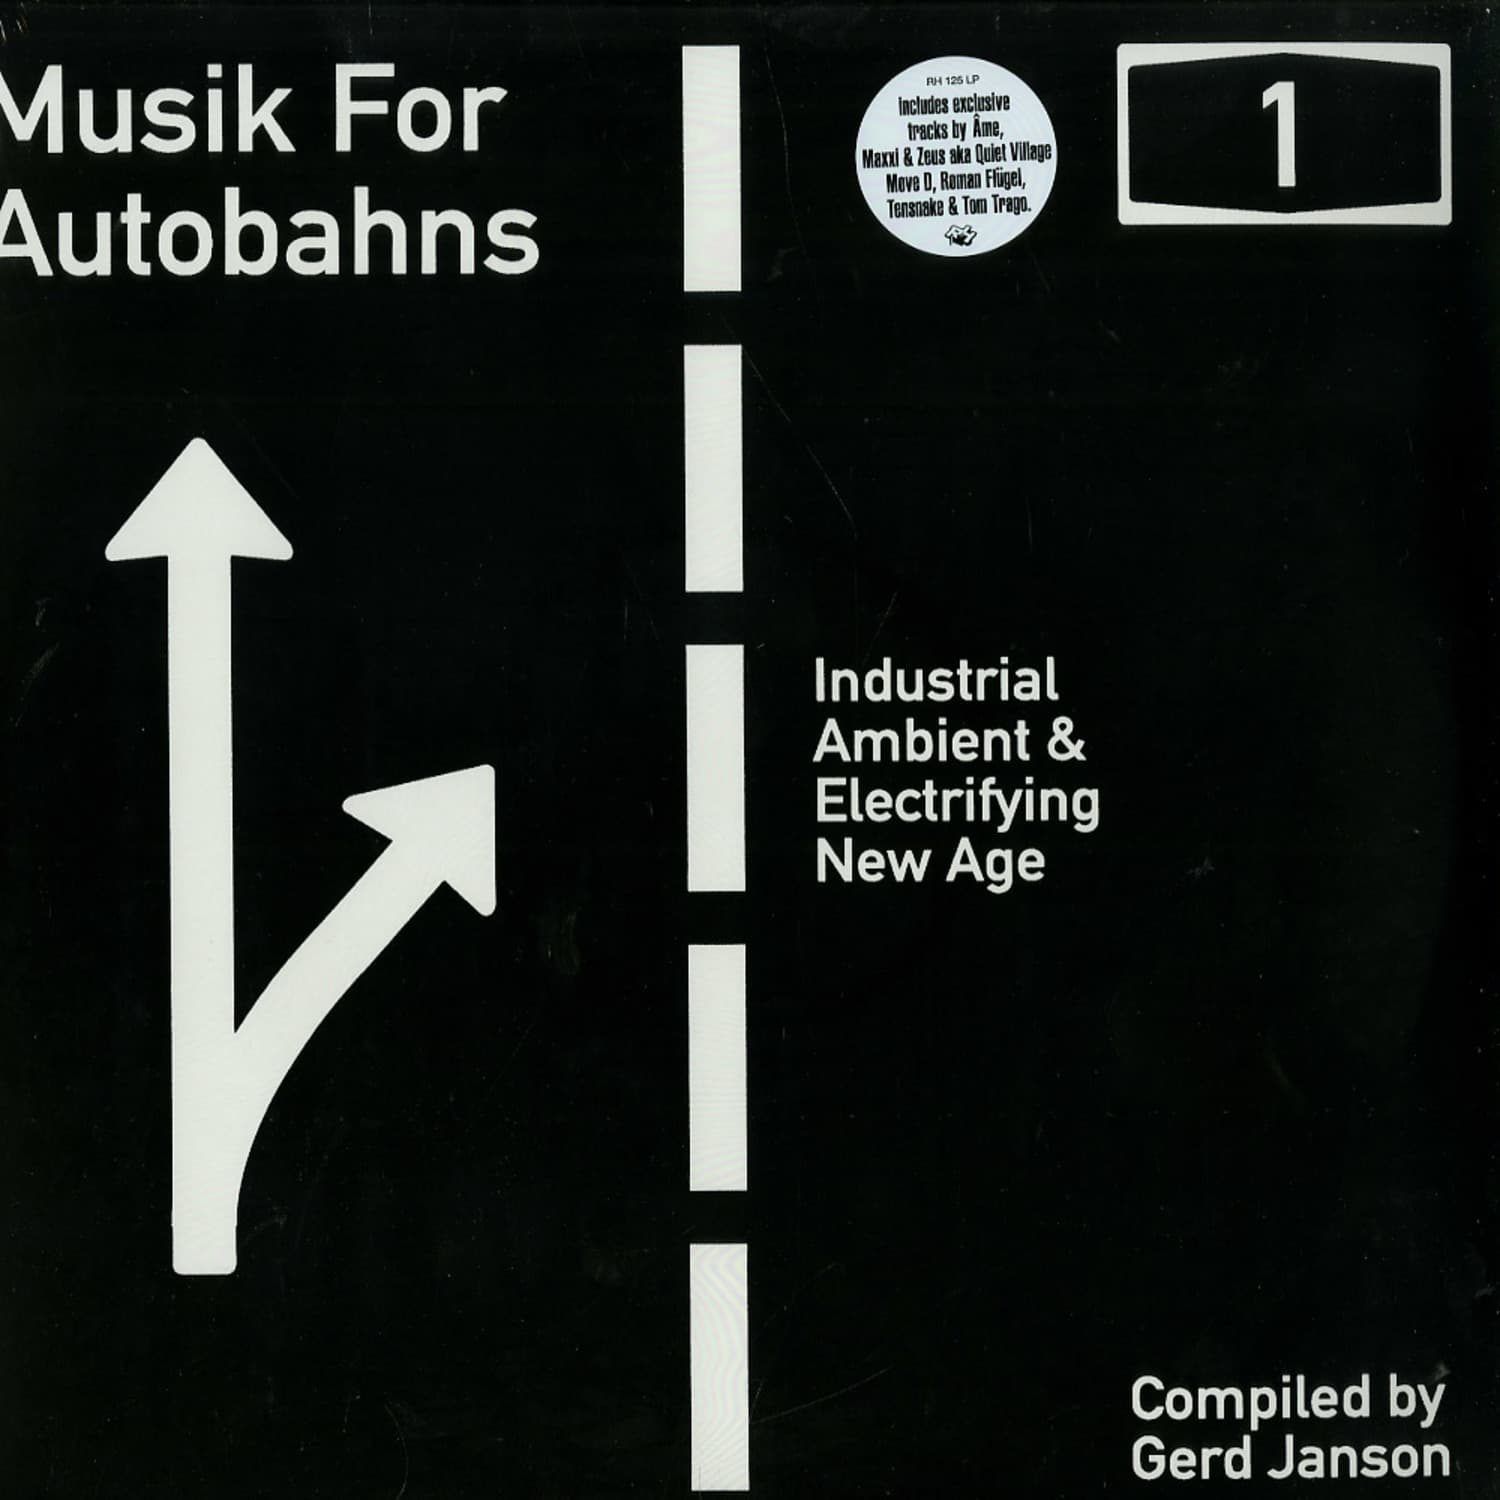 Gerd Janson Presents - MUSIK FOR AUTOBAHNS